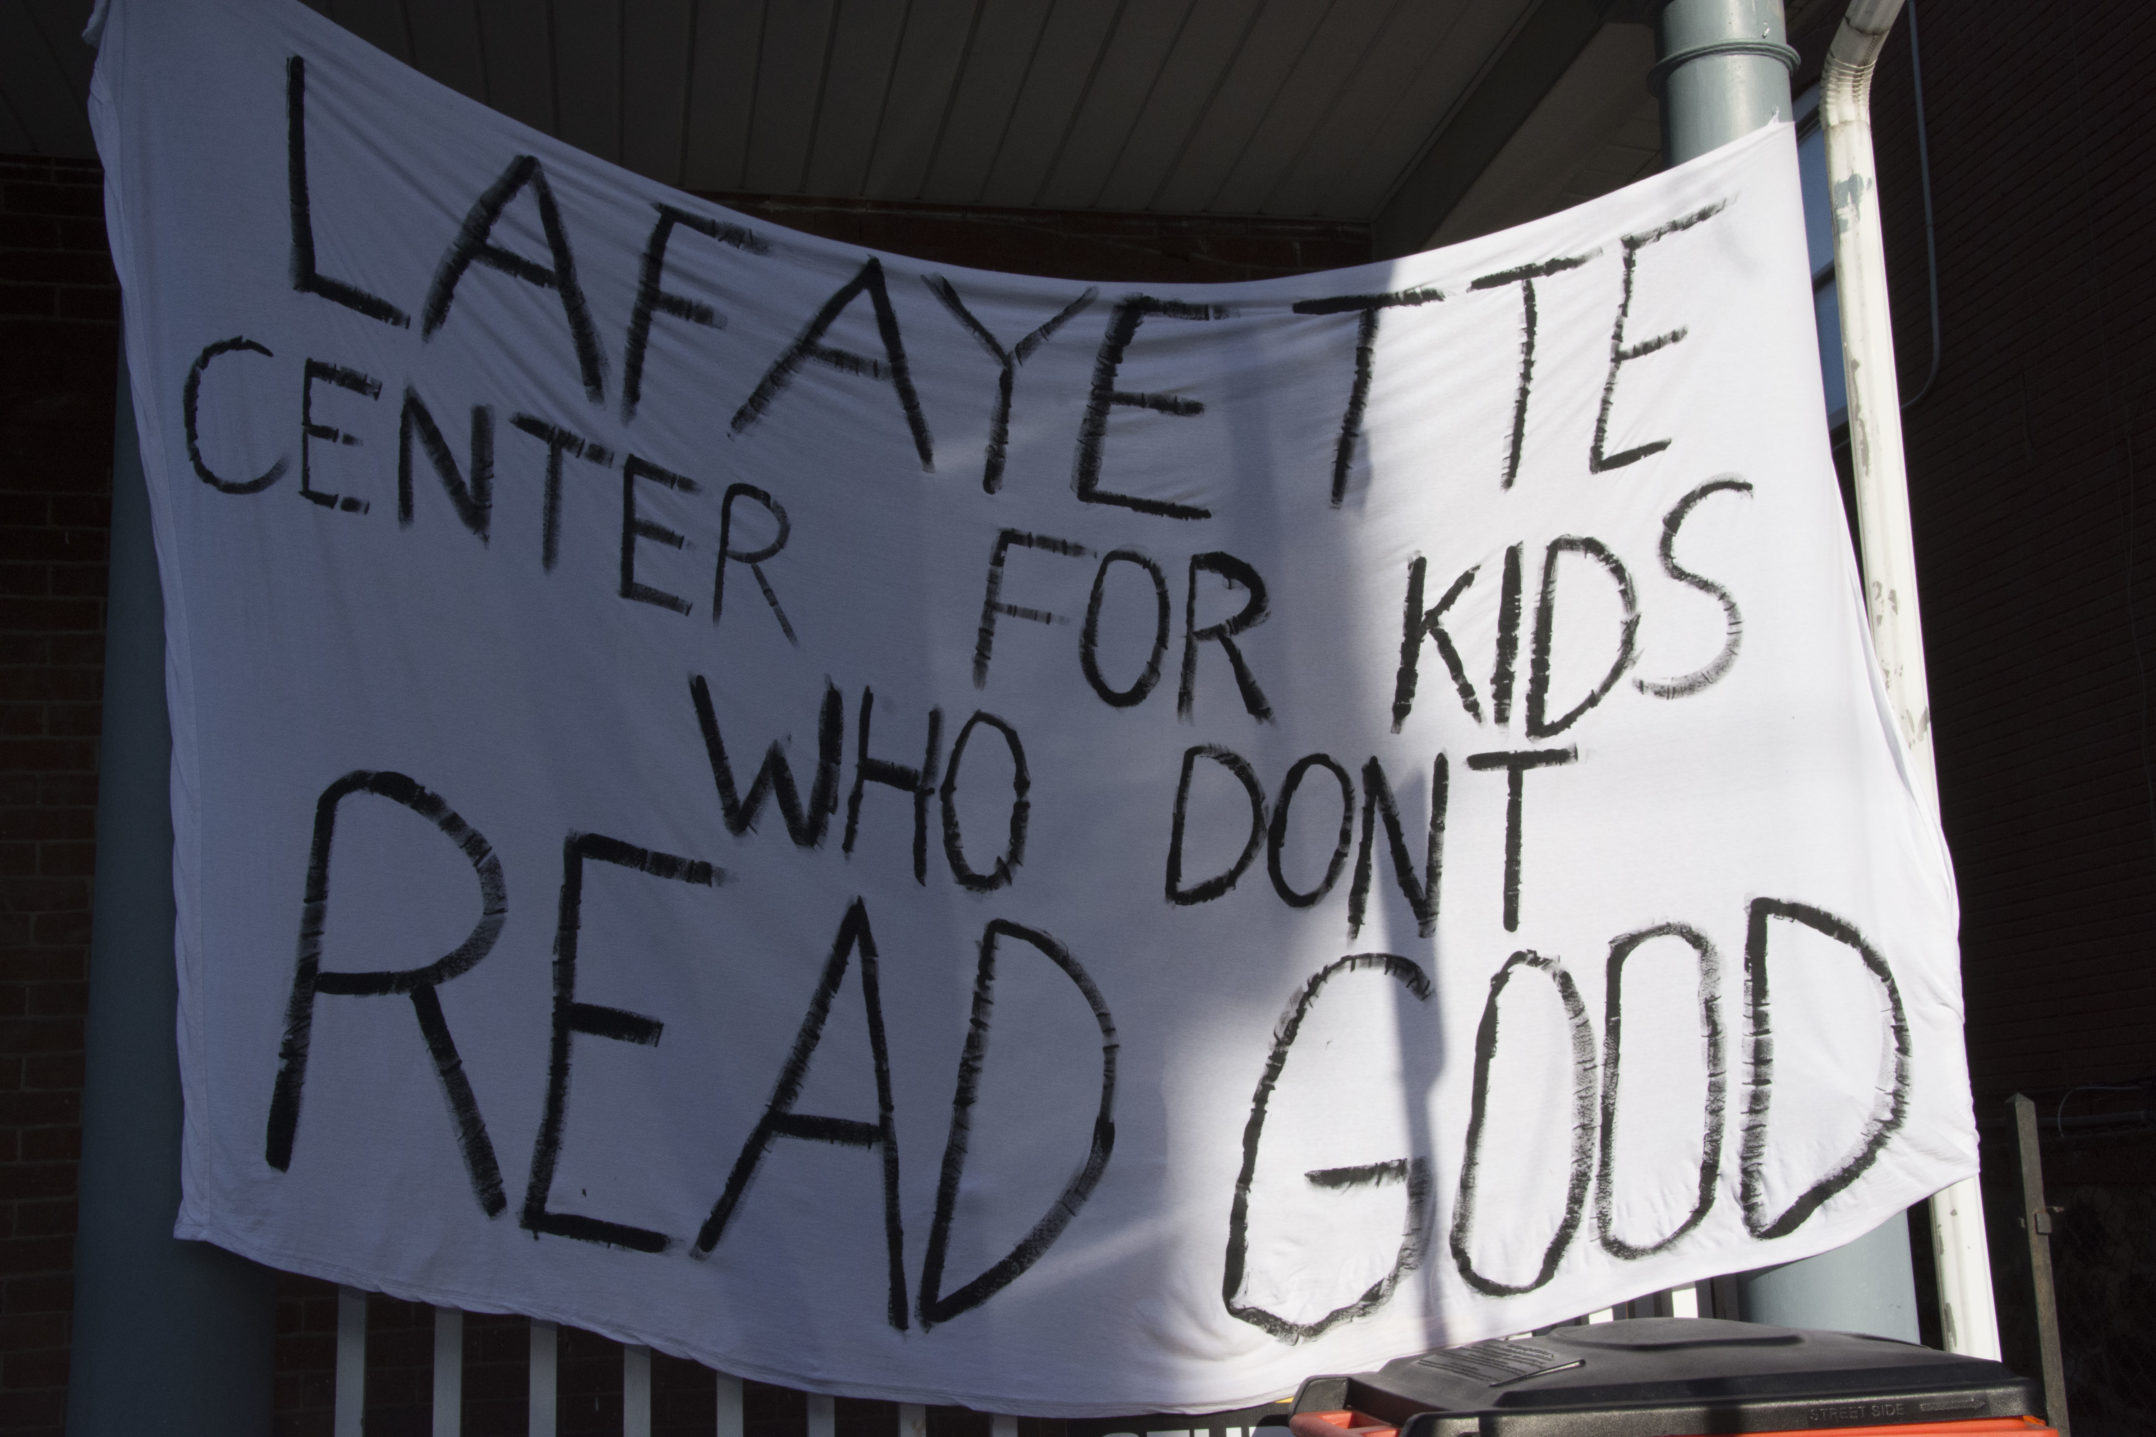 "A banner reading ""Lafayette Center for Kids who Don't Read Good"" hangs from a house on Hillside Avenue on Wednesday, Nov. 15, 2017. The banner is referencing the idea that Lehigh students are smarter than students at Lafayette. (Annie Henry/B&W Staff)"